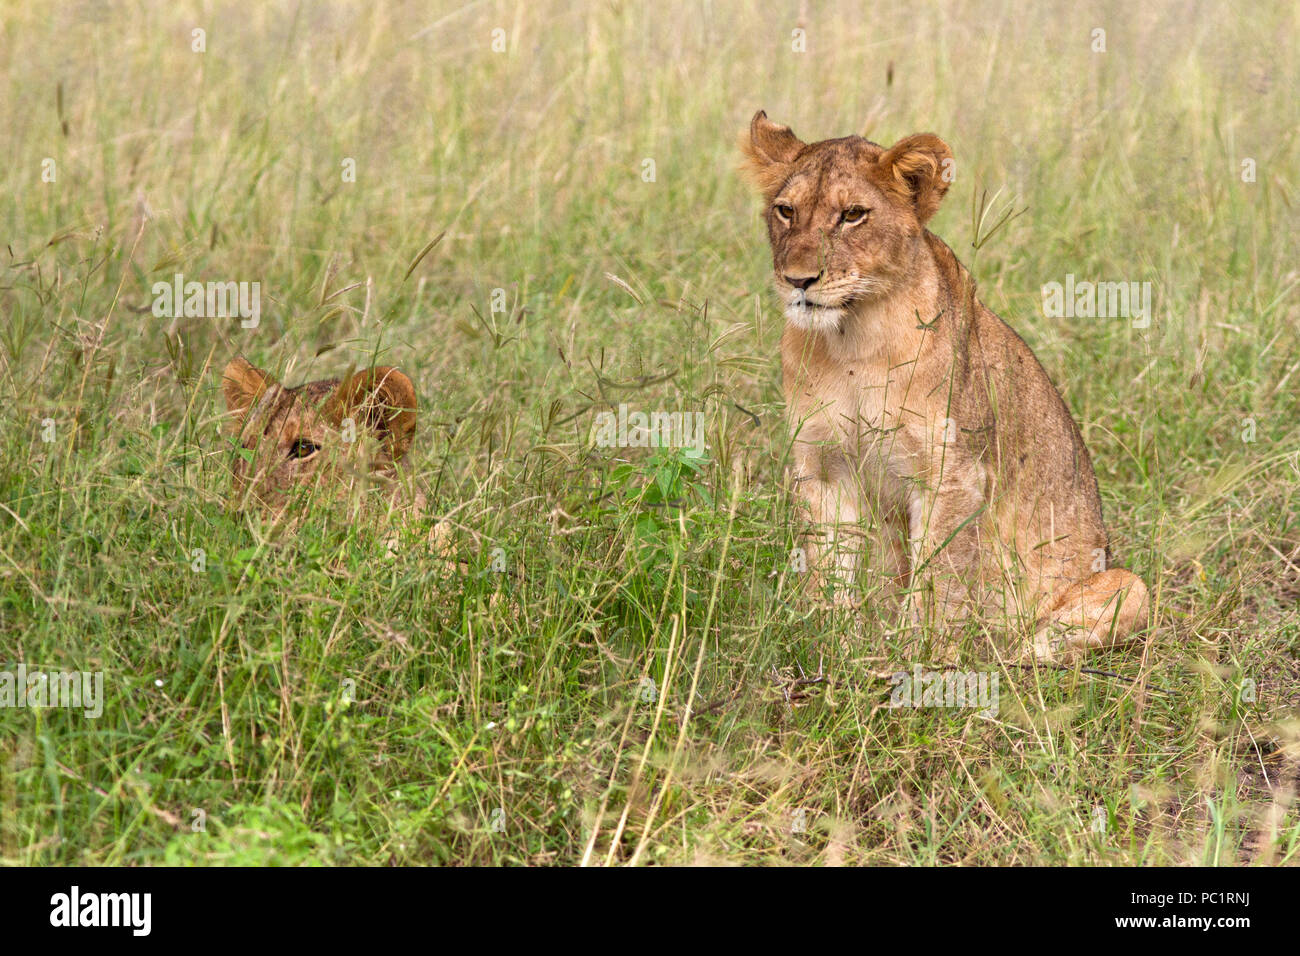 A pair of well-fed lion cubs calmly watch the approach of their fatheras he hoins the feast their mother have helped kill for the pride. - Stock Image